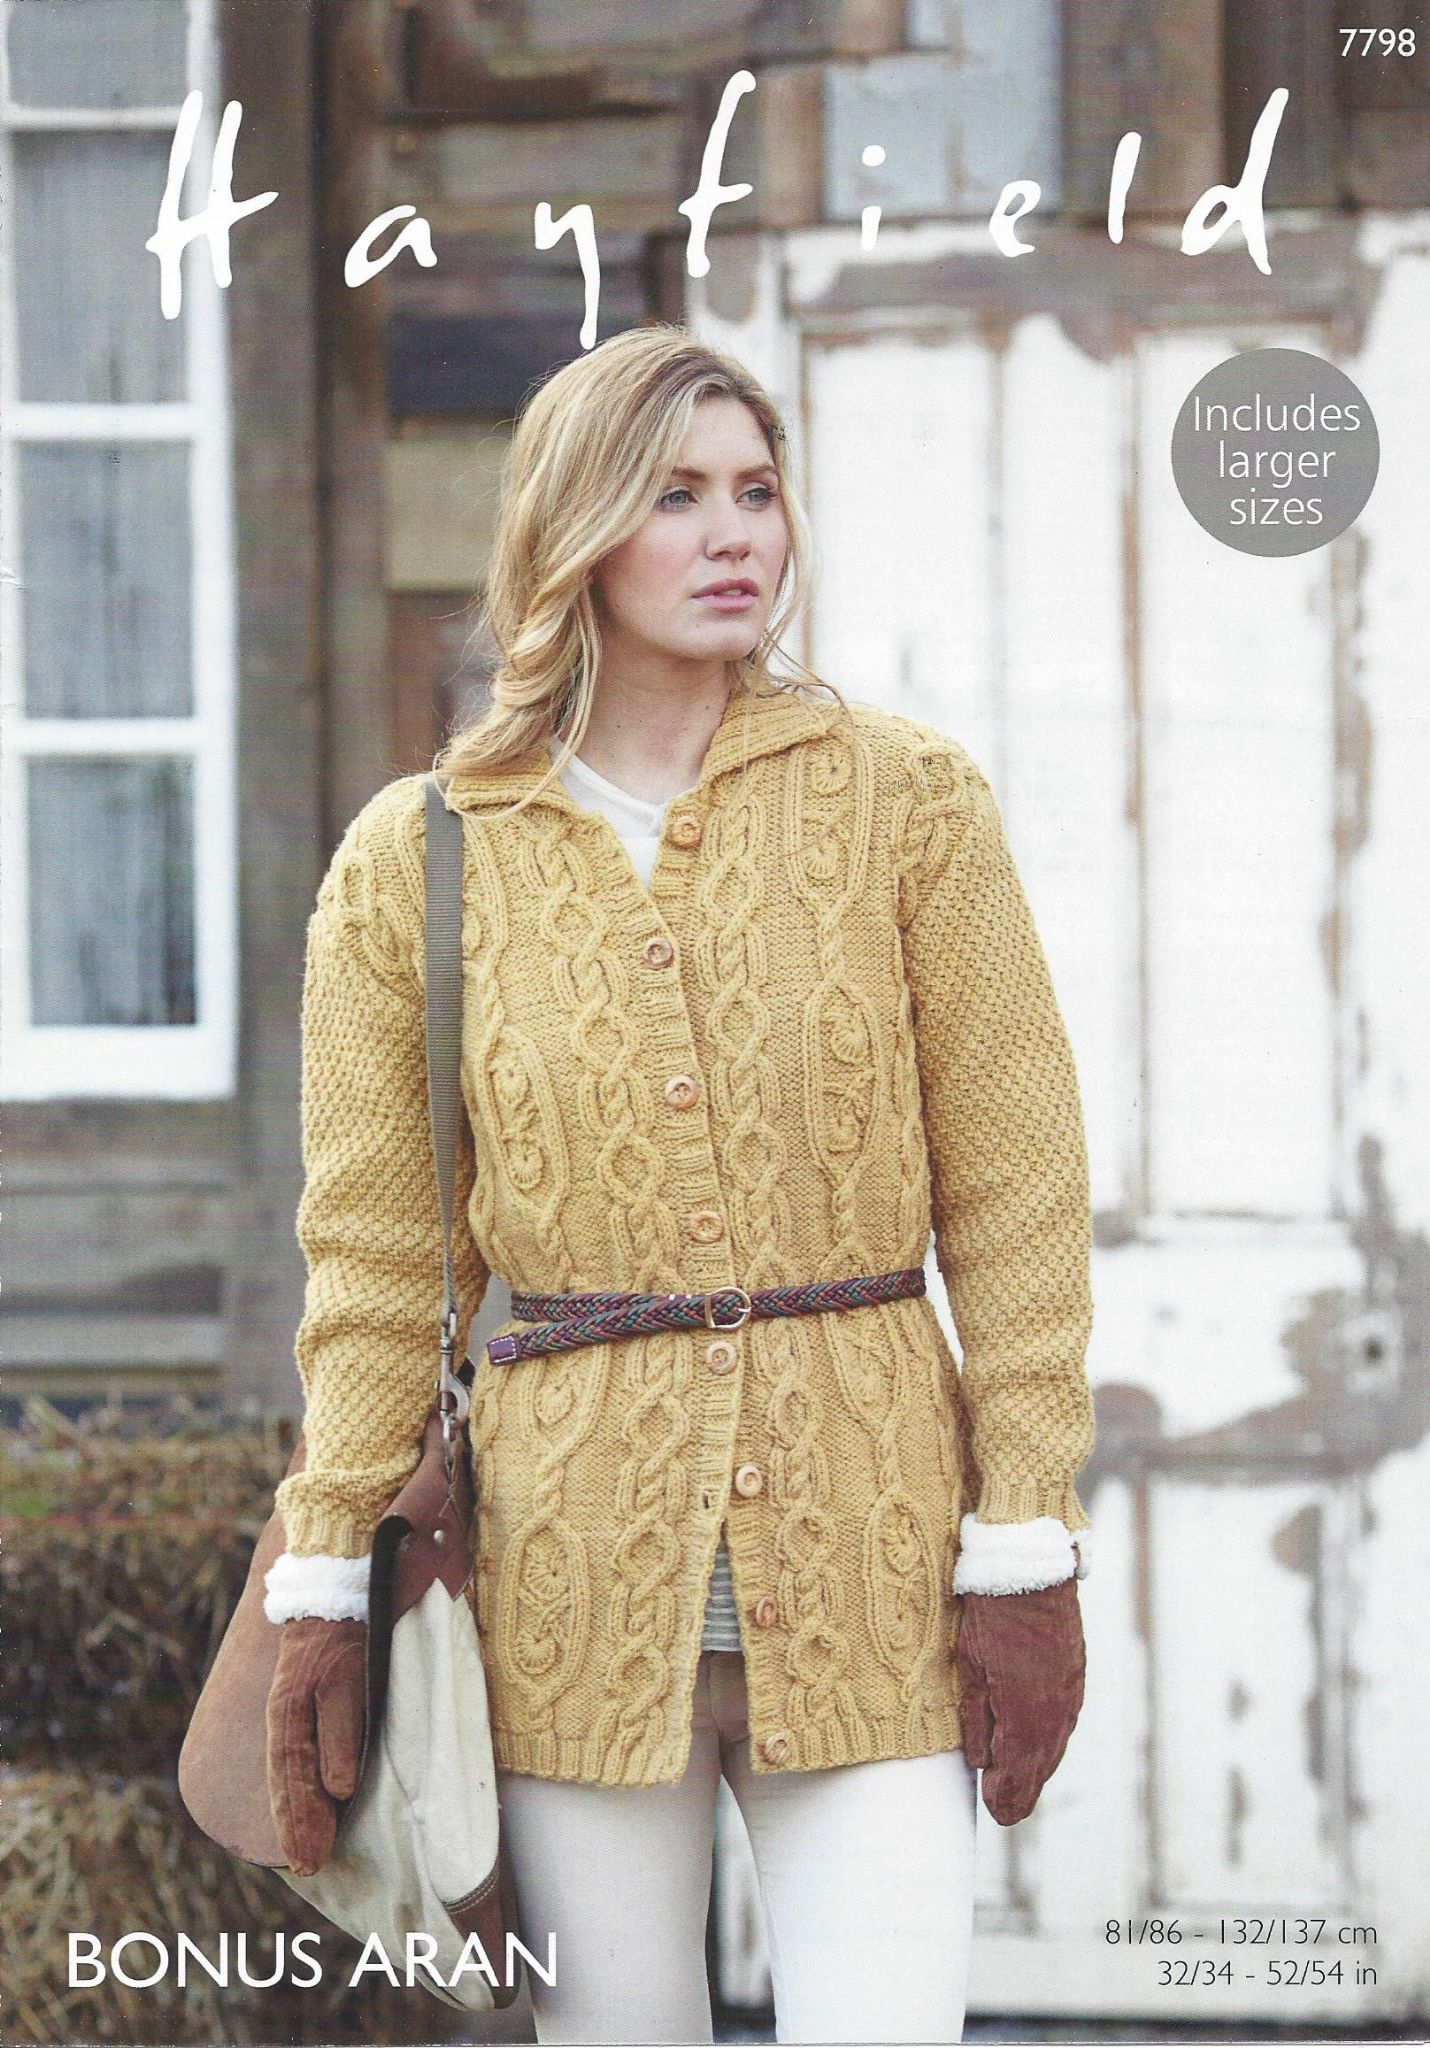 Hayfield Aran Knitting Pattern Books : Hayfield Bonus Aran - 7798 Coat Knitting Pattern